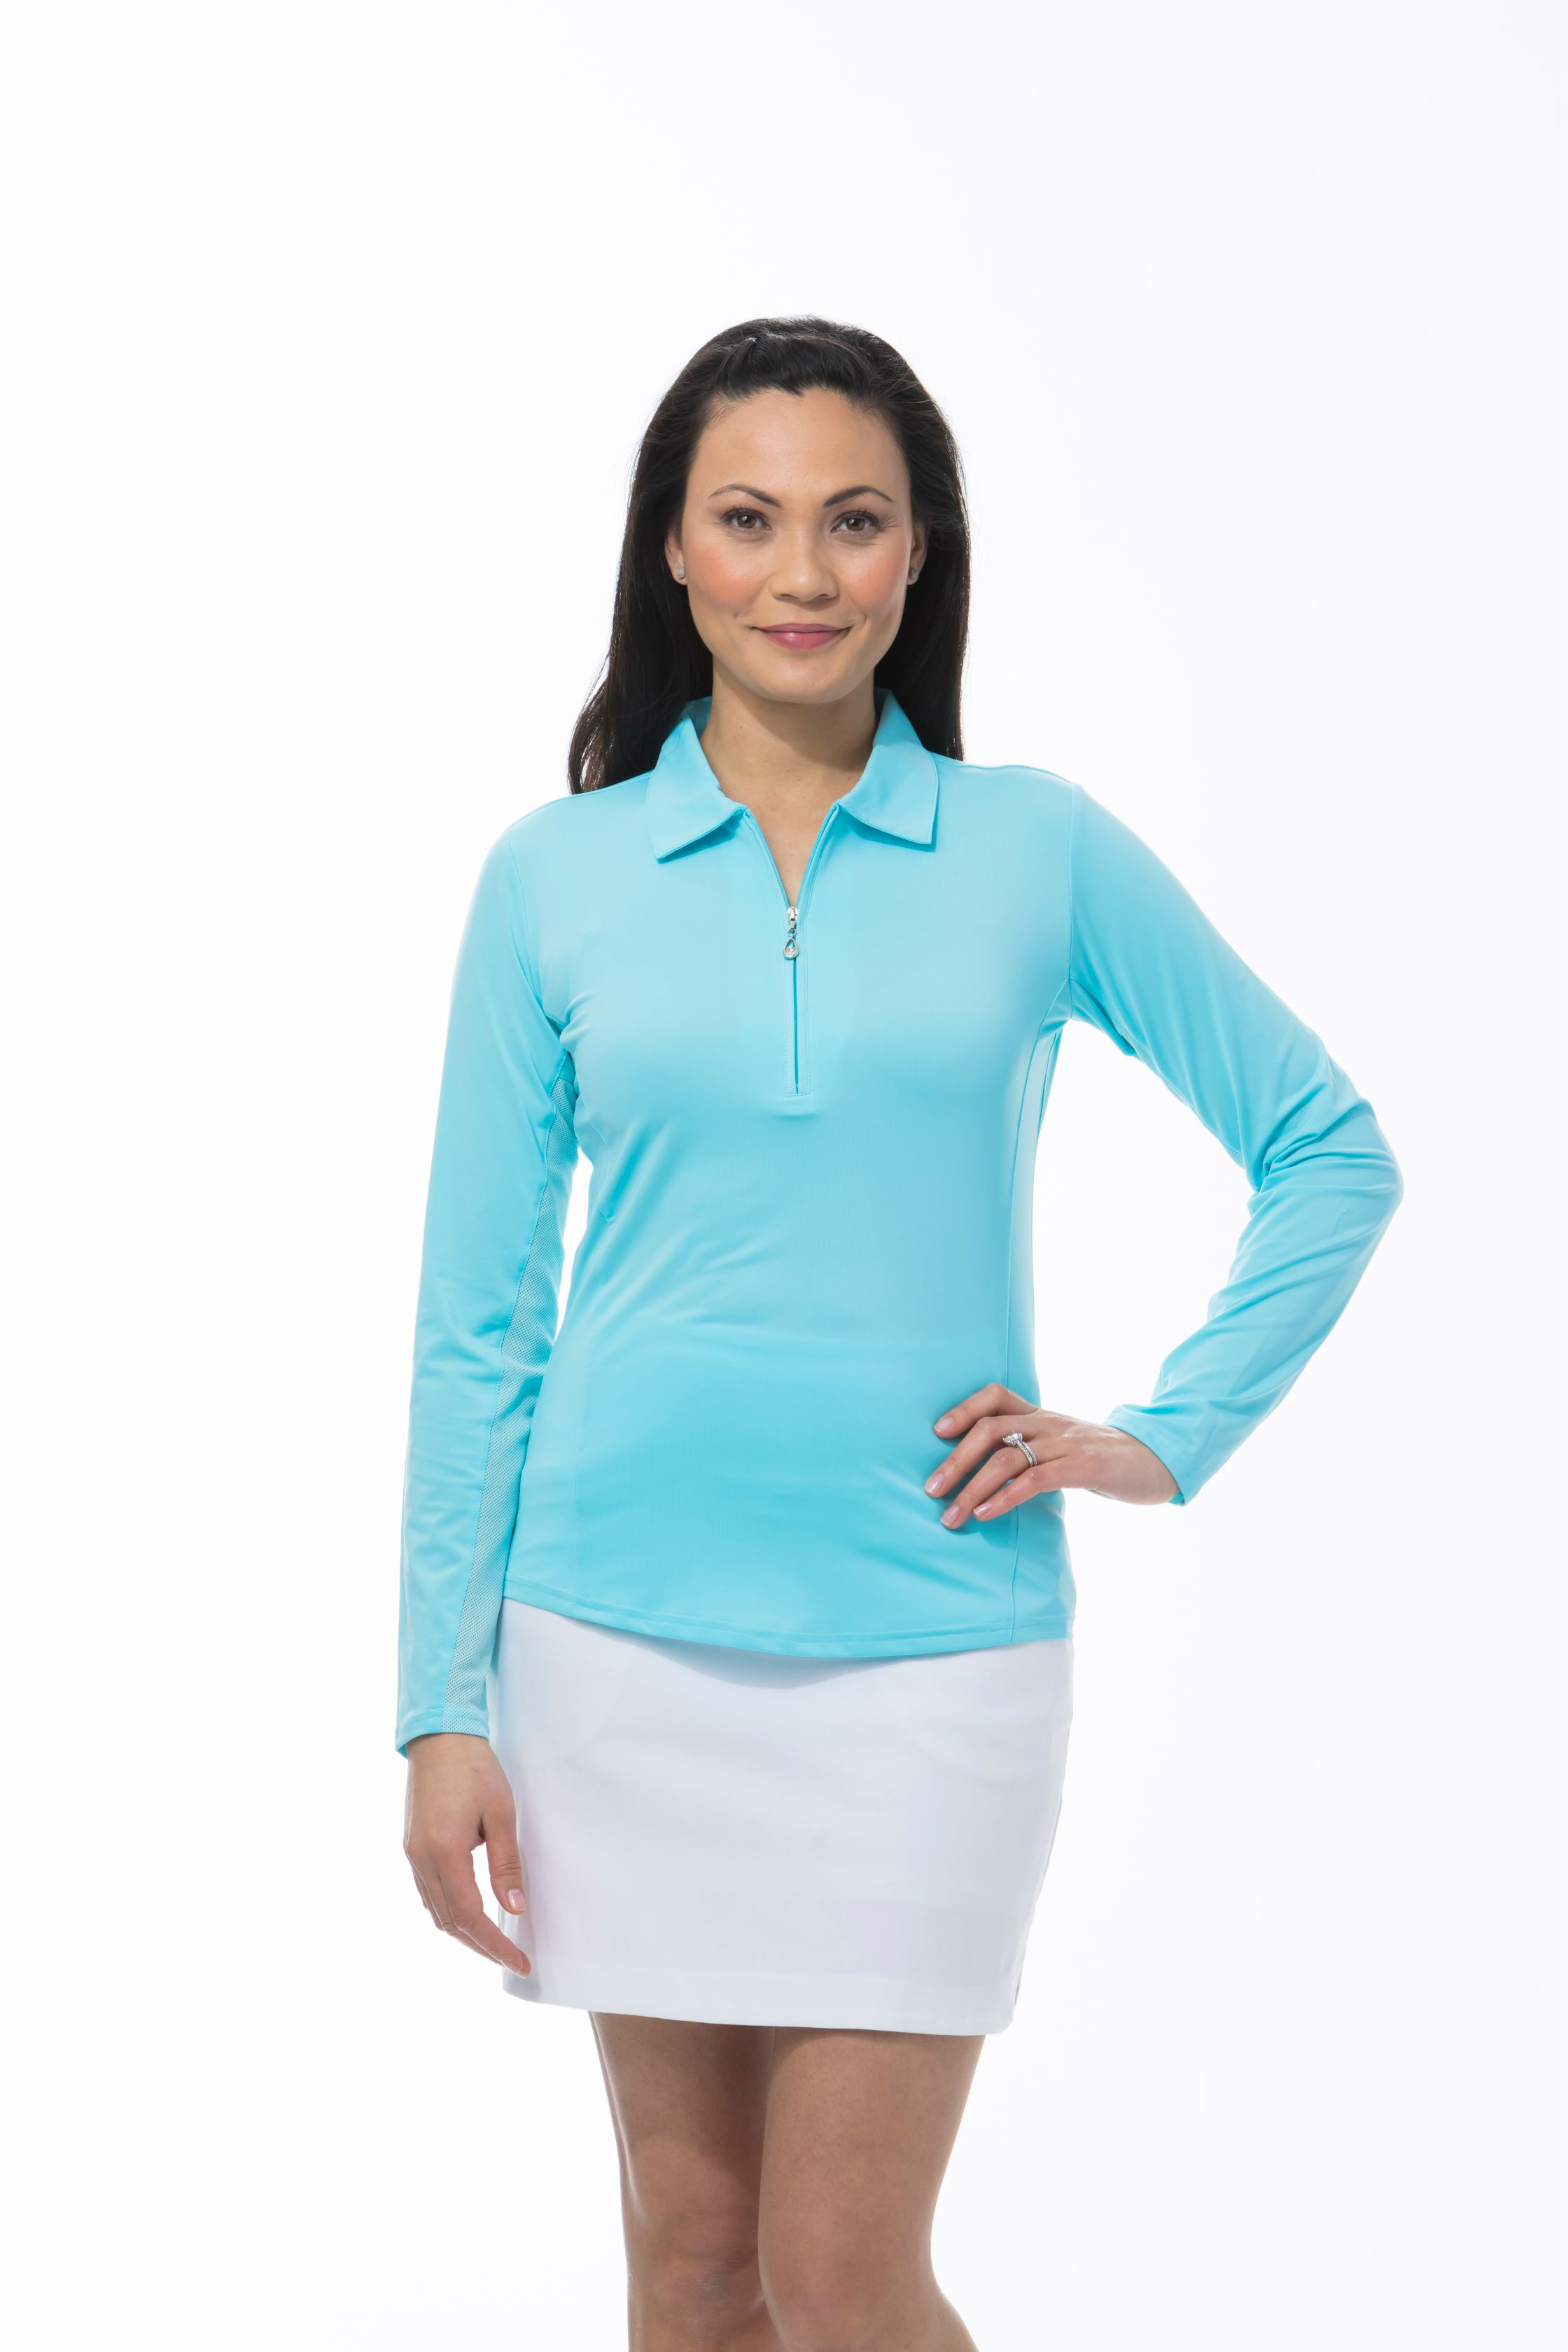 900433 SunGlow Zip Polo. Capri Blue